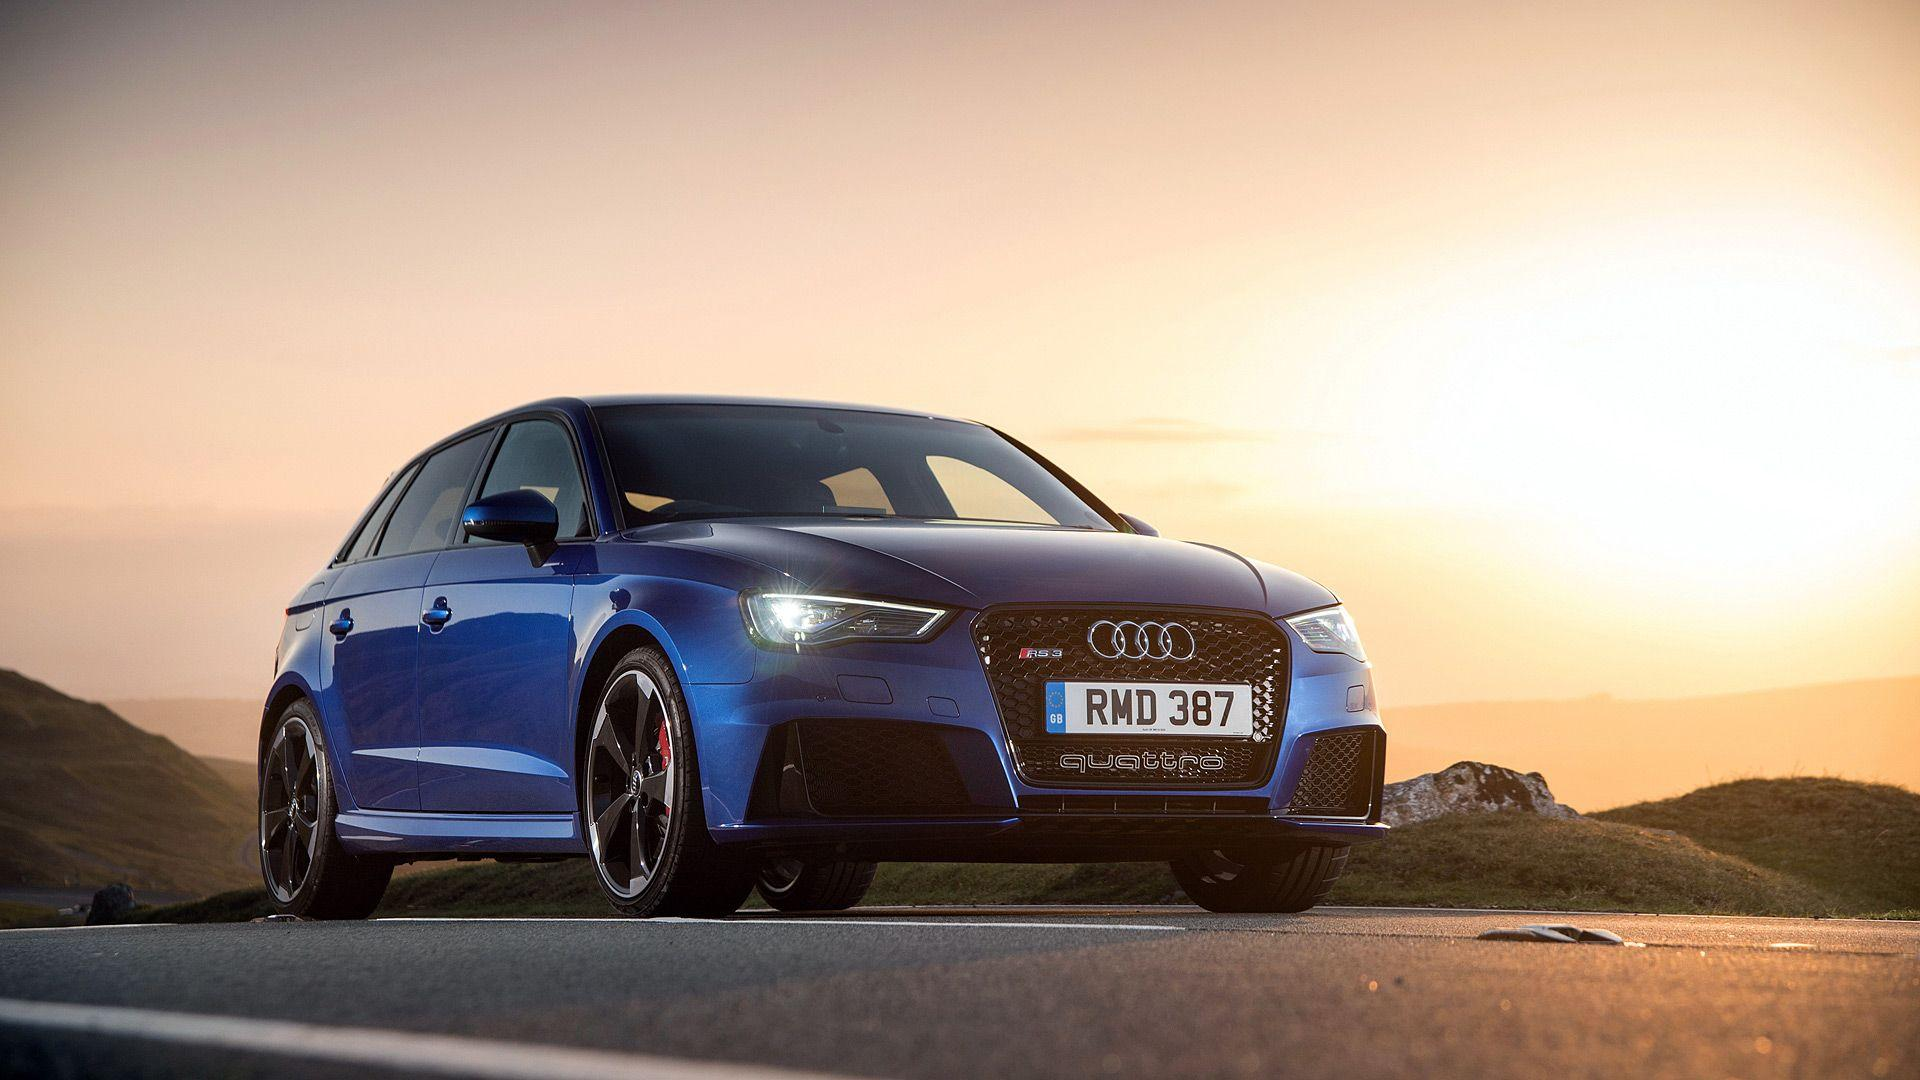 2016 Audi RS3 Sportback Wallpapers & HD Image